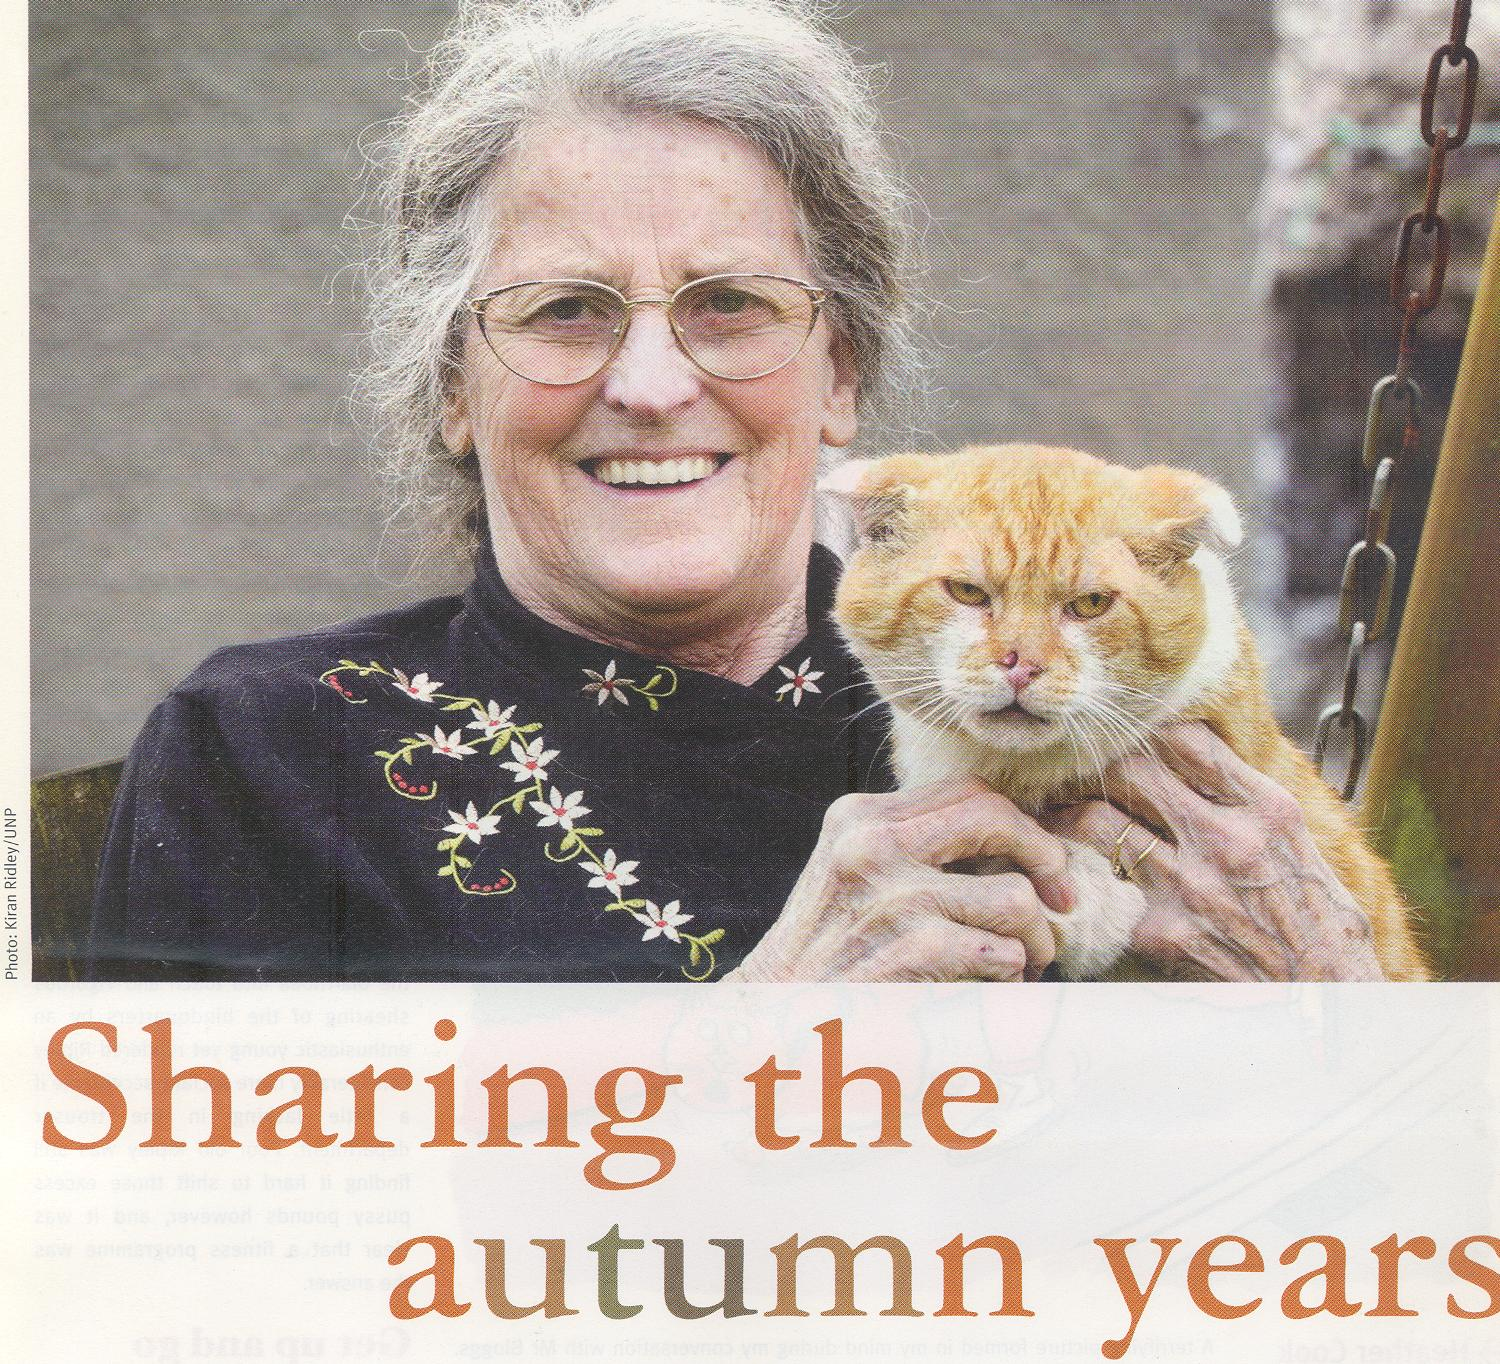 Older person with older cat